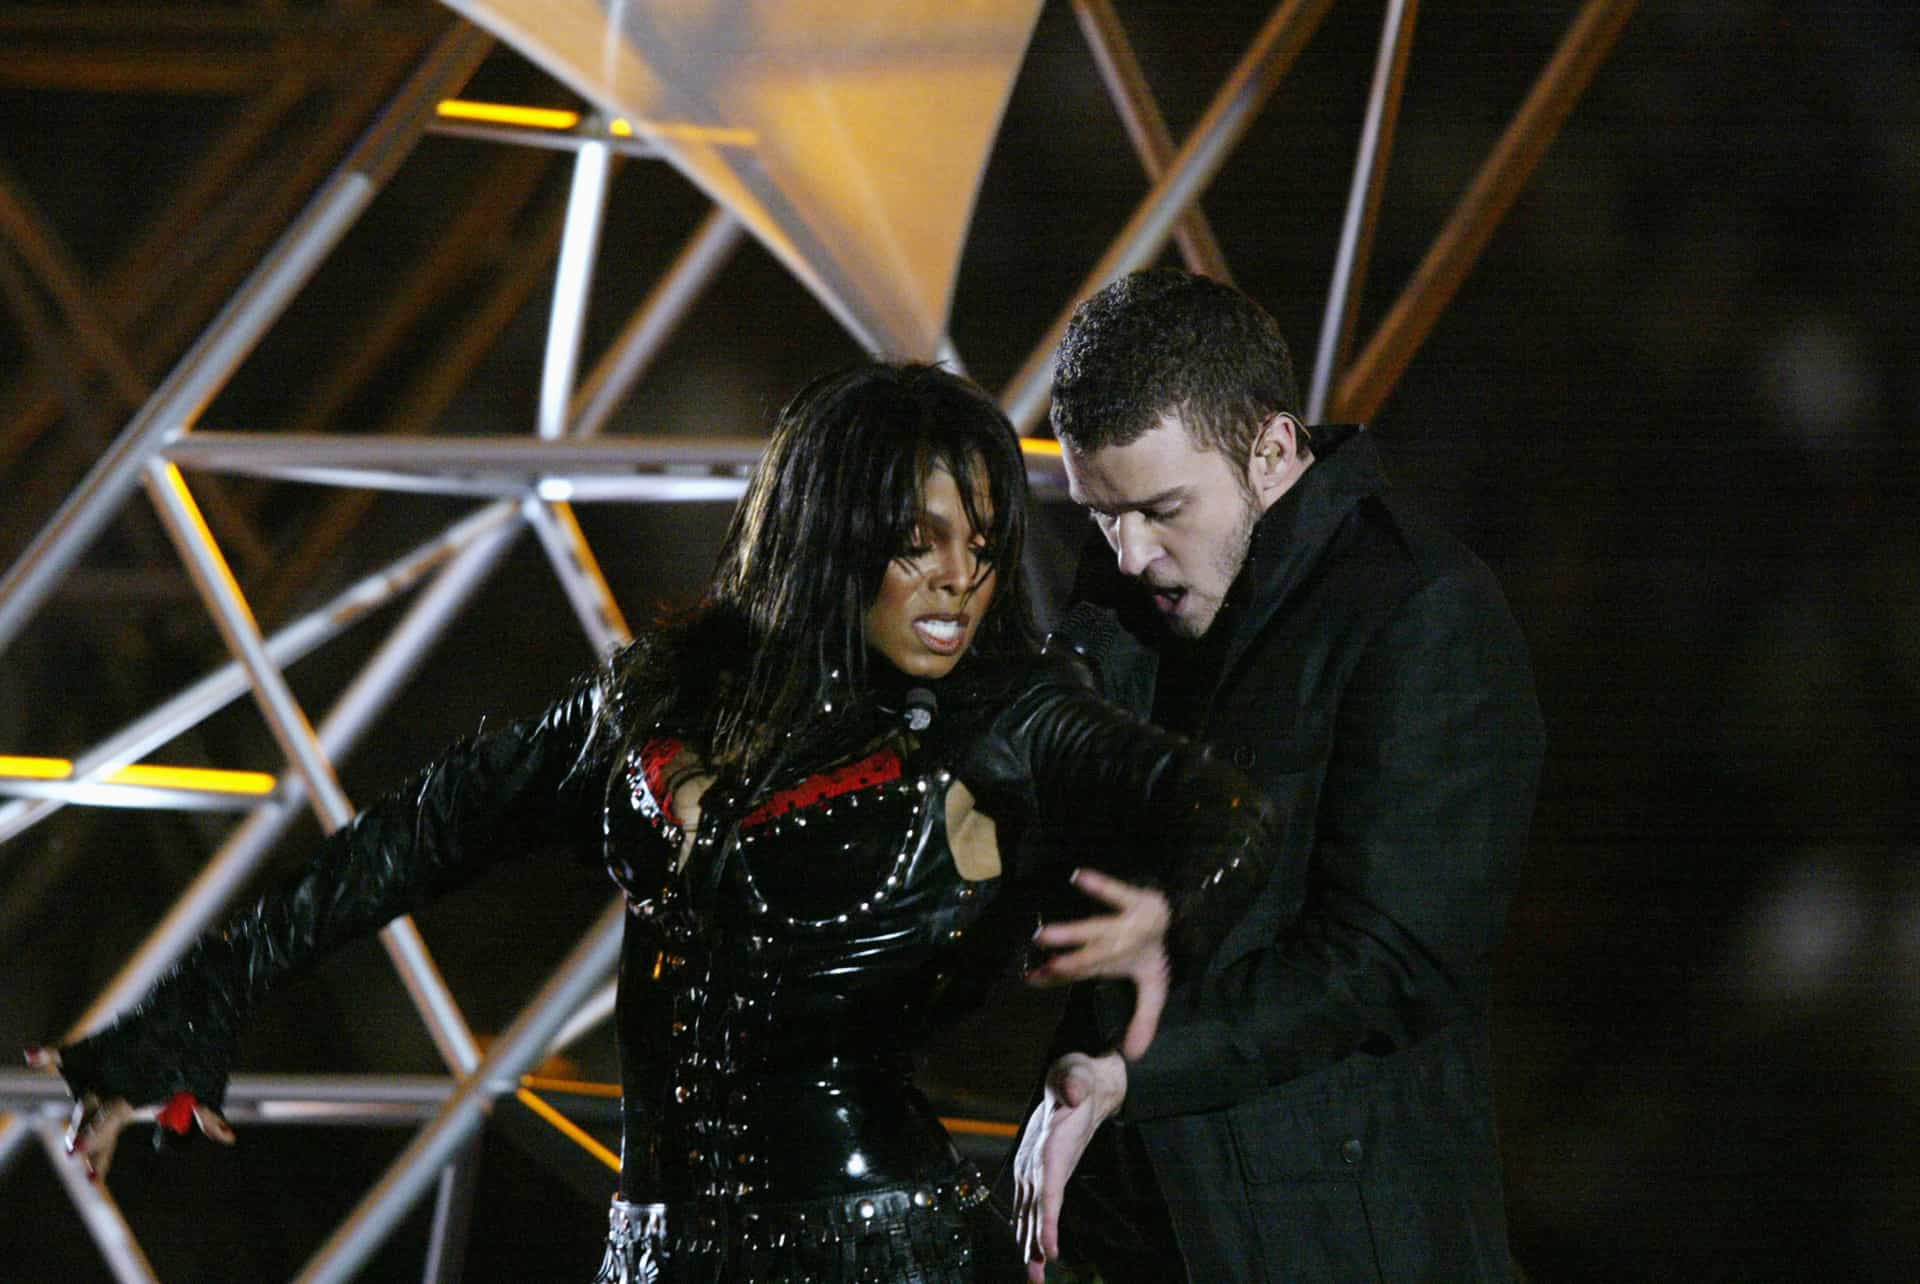 Revisit the most memorable Super Bowl performances